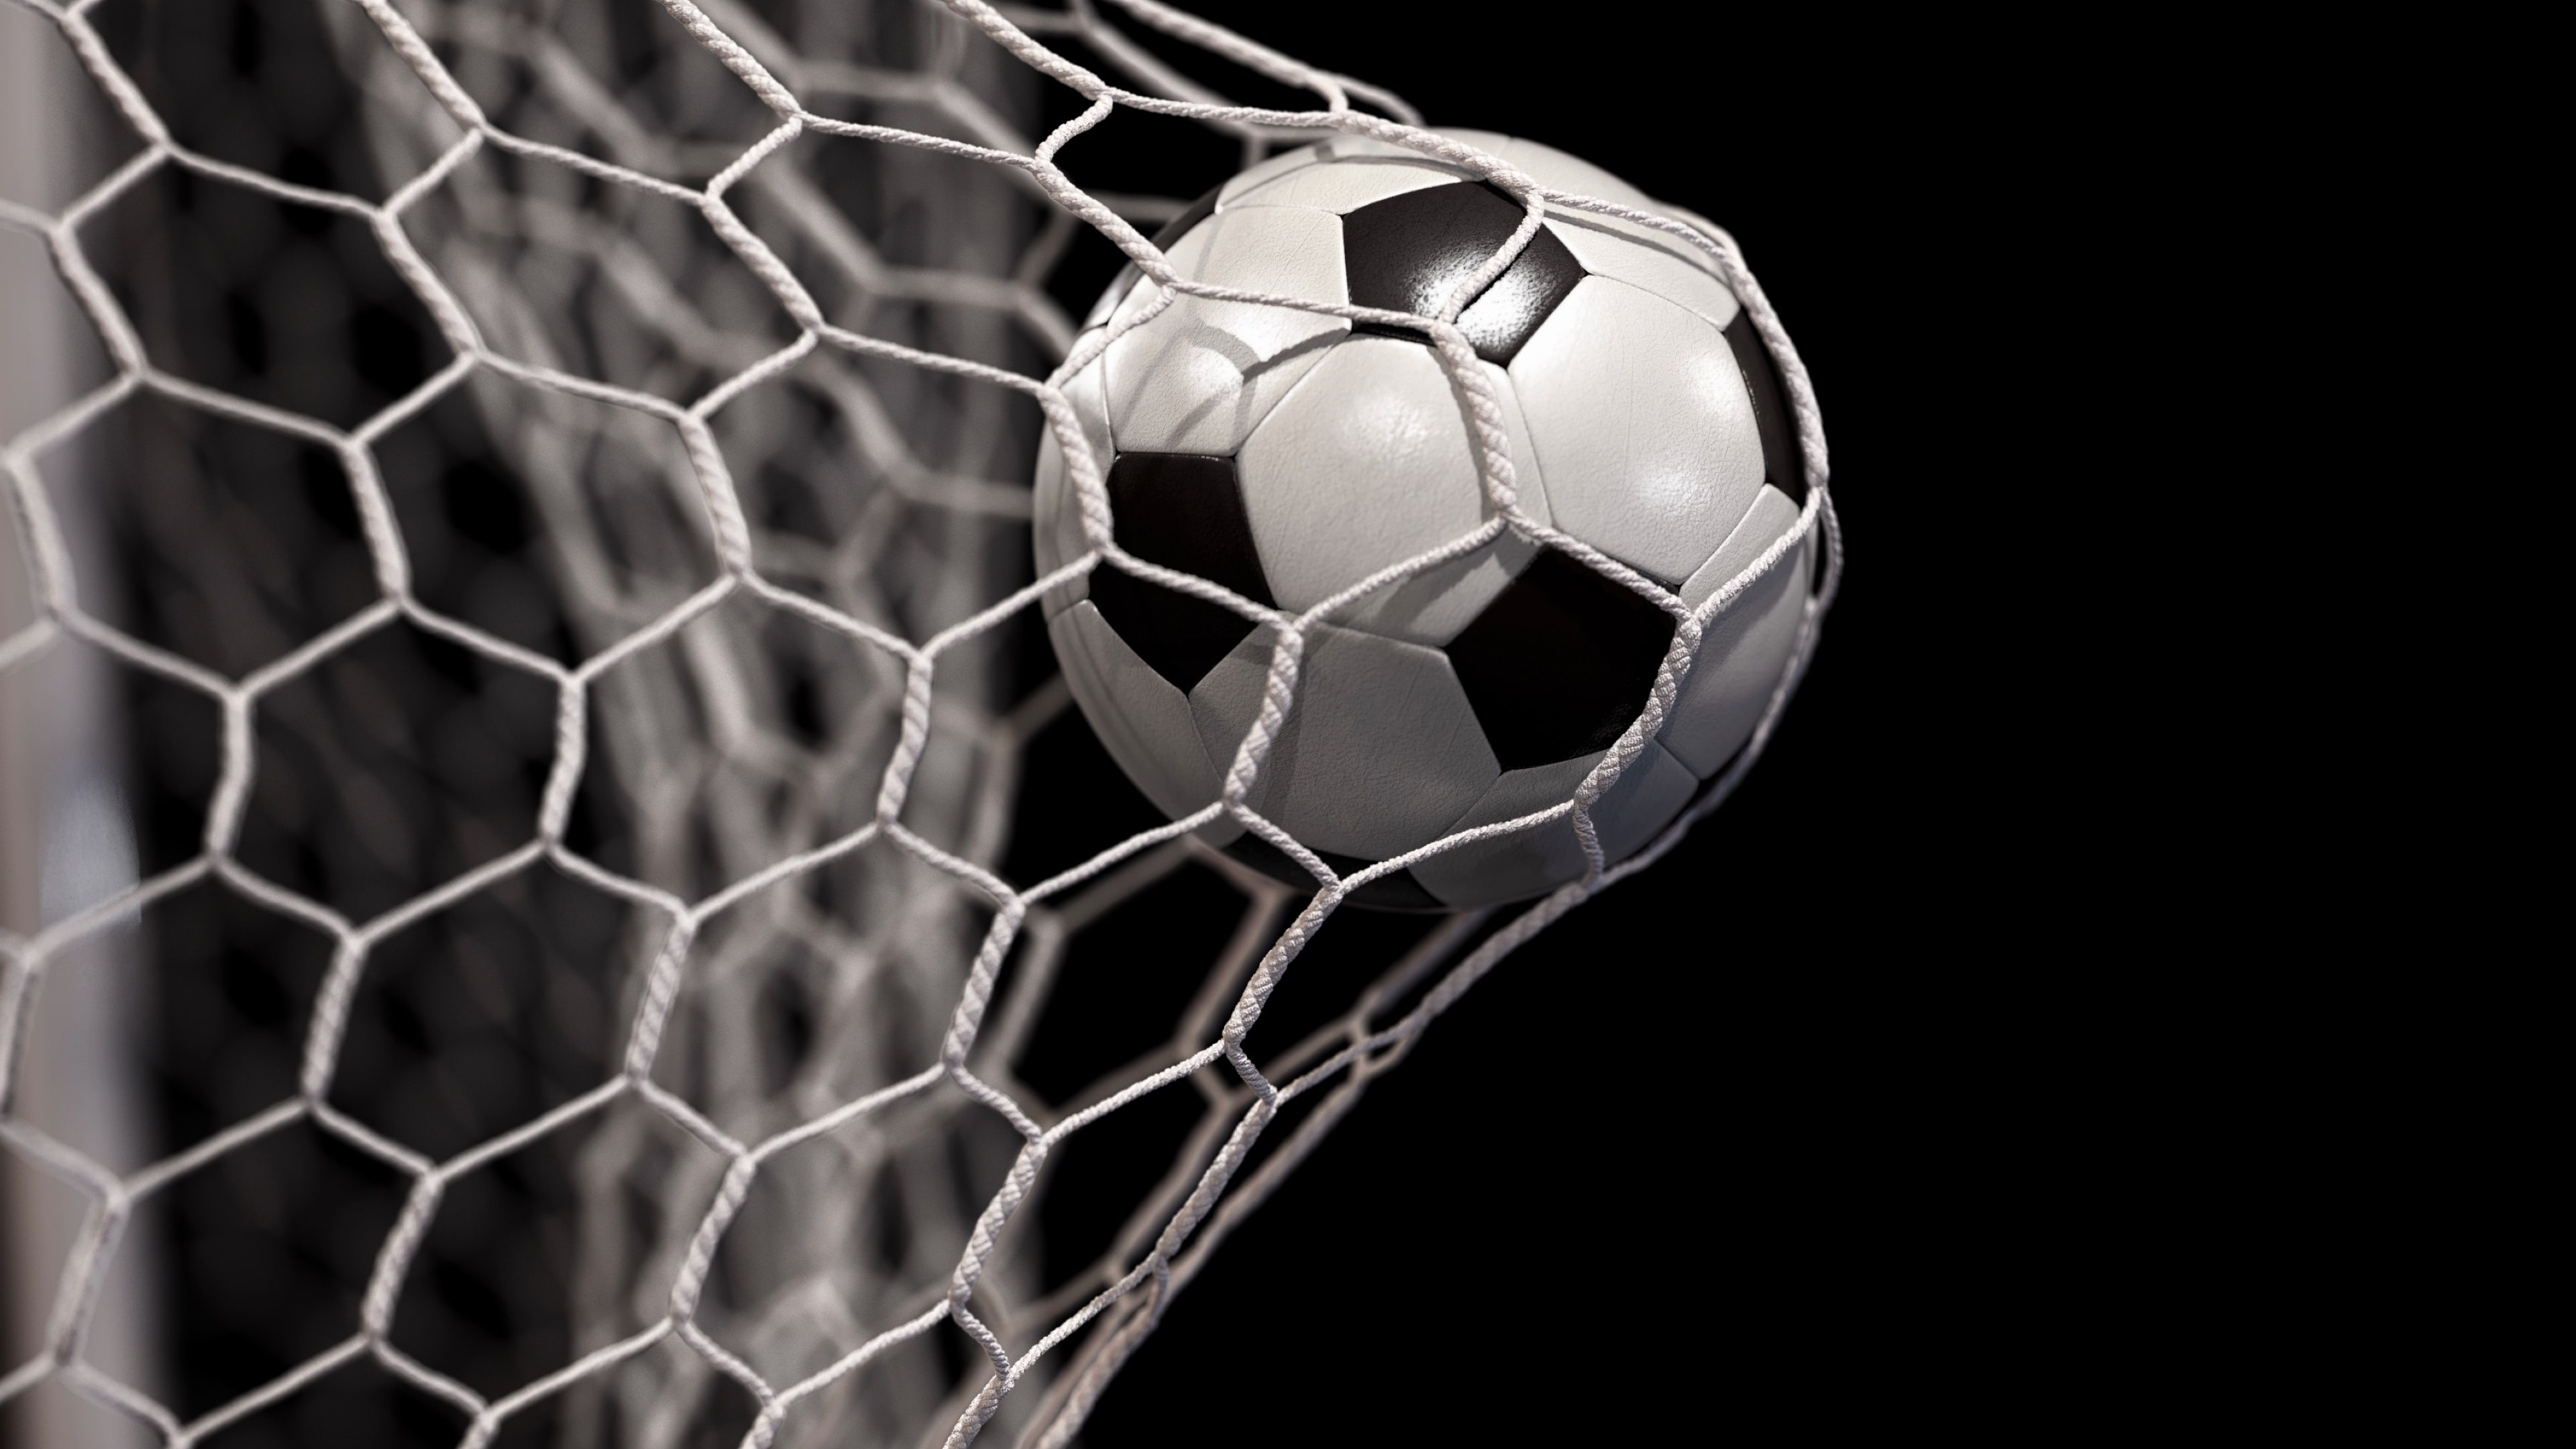 Beautiful Soccer Ball Flies Into Net On A Black Background In Slow Motion Stock Footage Flies Net Ball Beautiful Soccer Ball Soccer Soccer Backgrounds